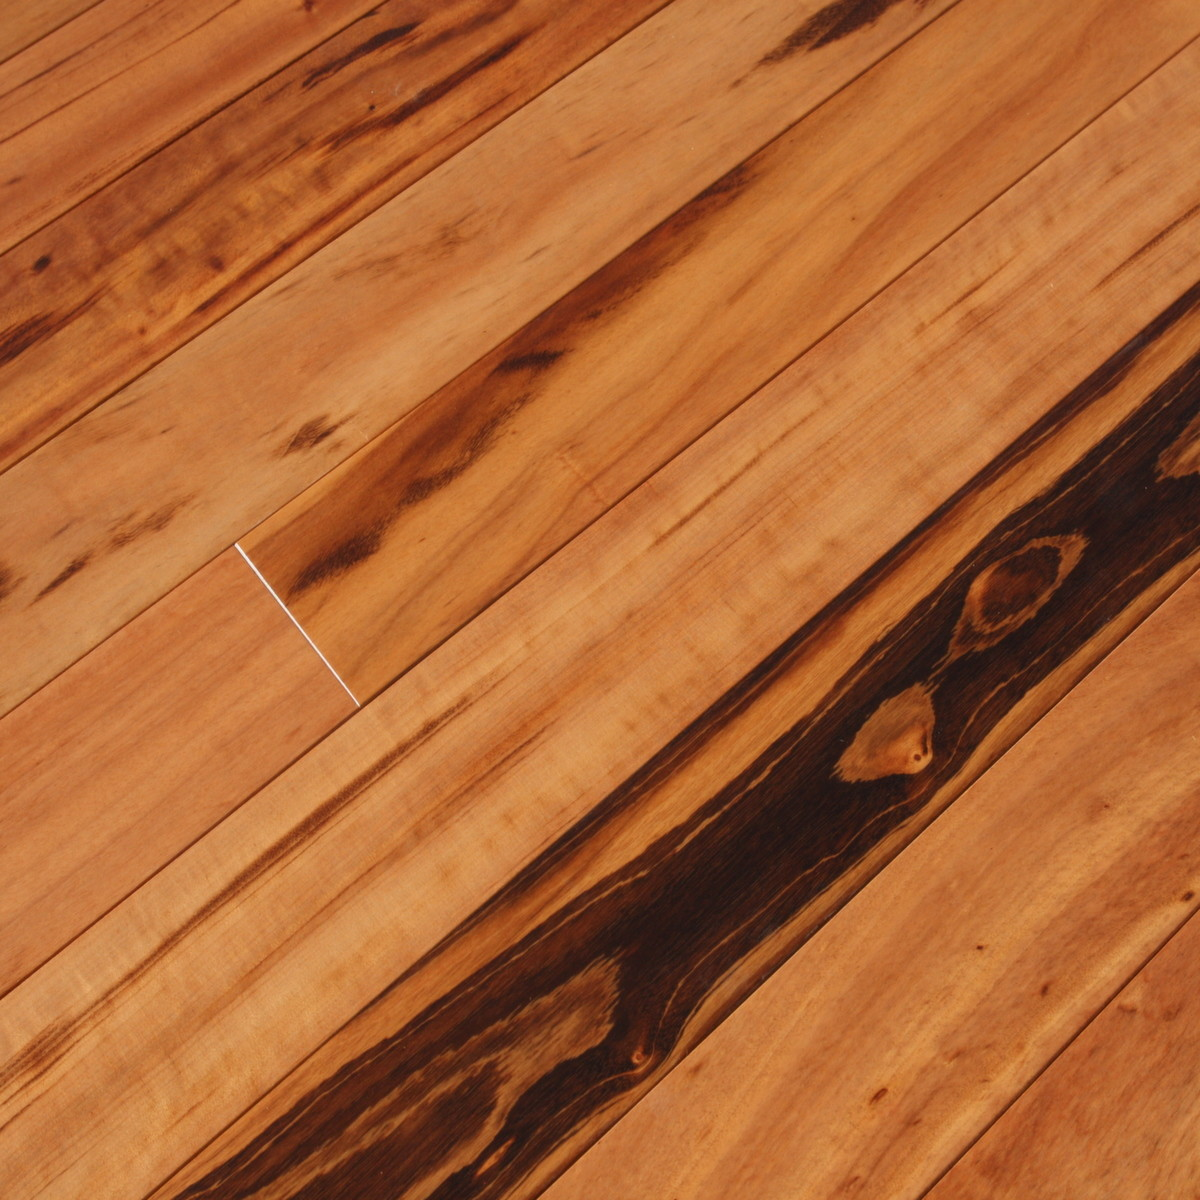 Triangulo Tigerwood Prefinished Solid Hardwood Floors Unique Wood